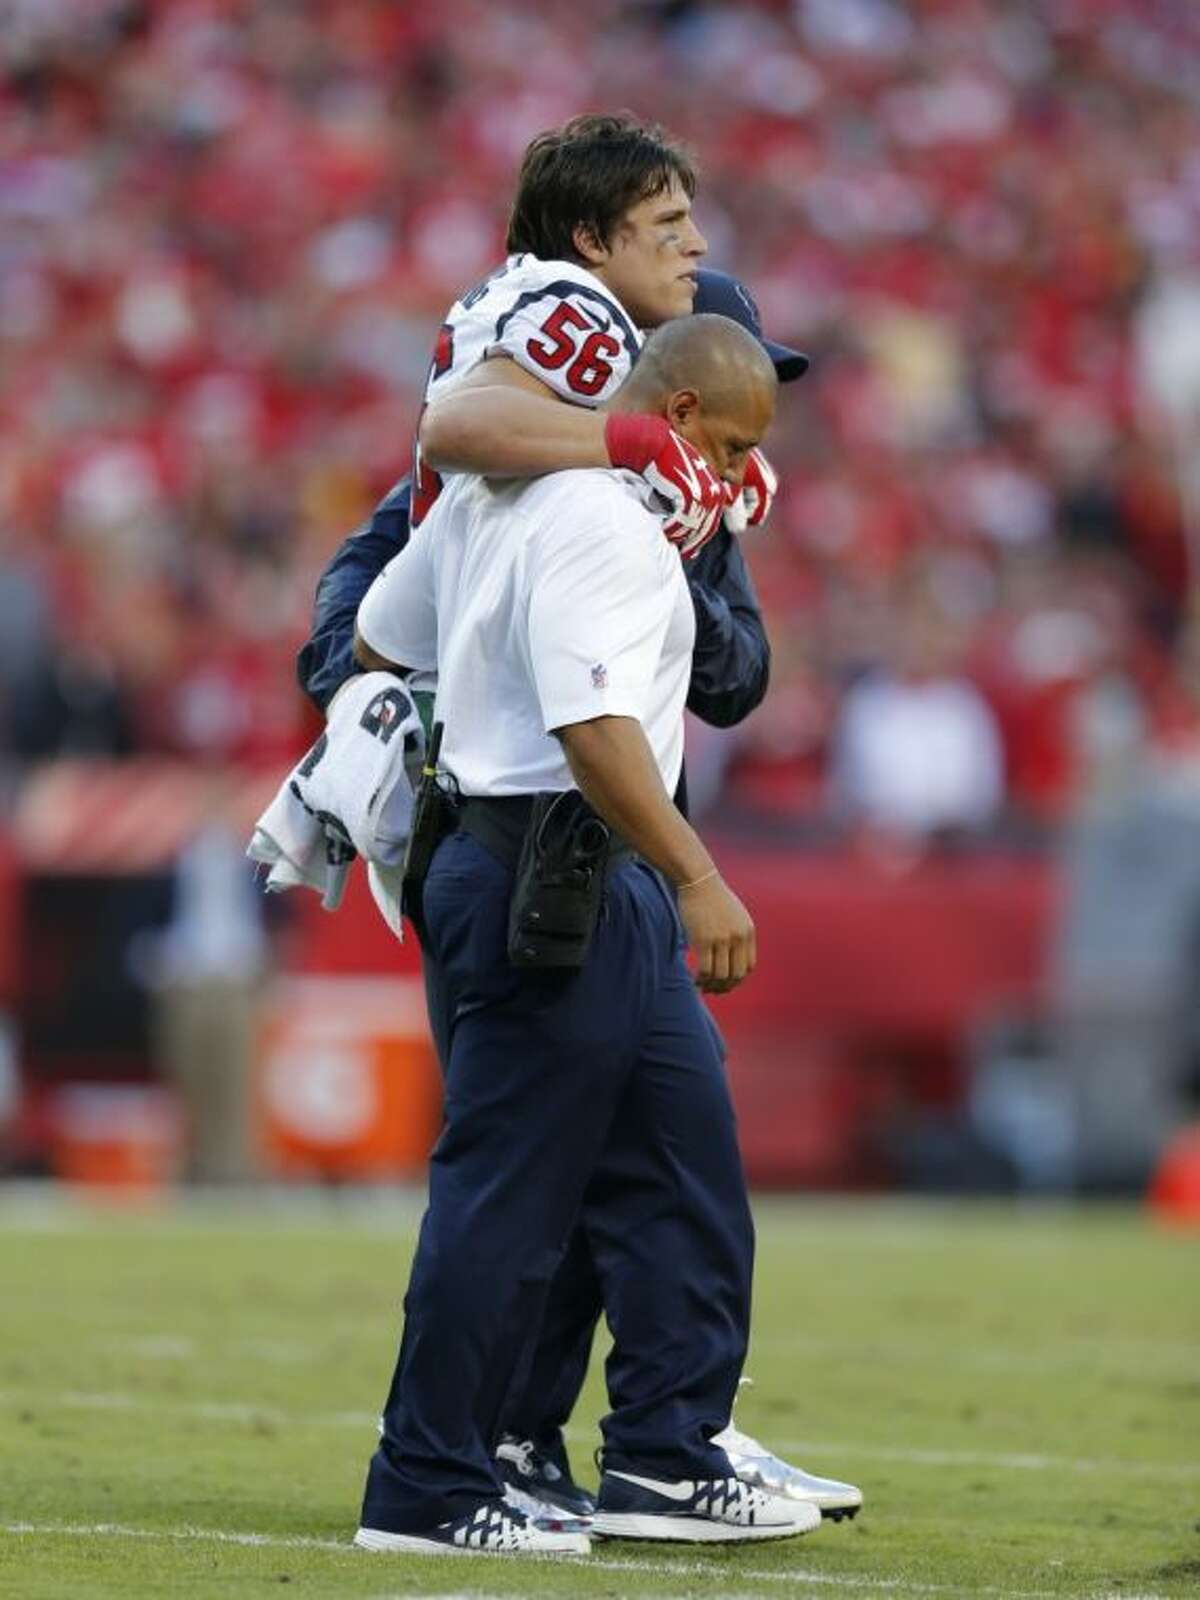 Texans linebacker Brian Cushing leaves the field with a knee injury Sunday.